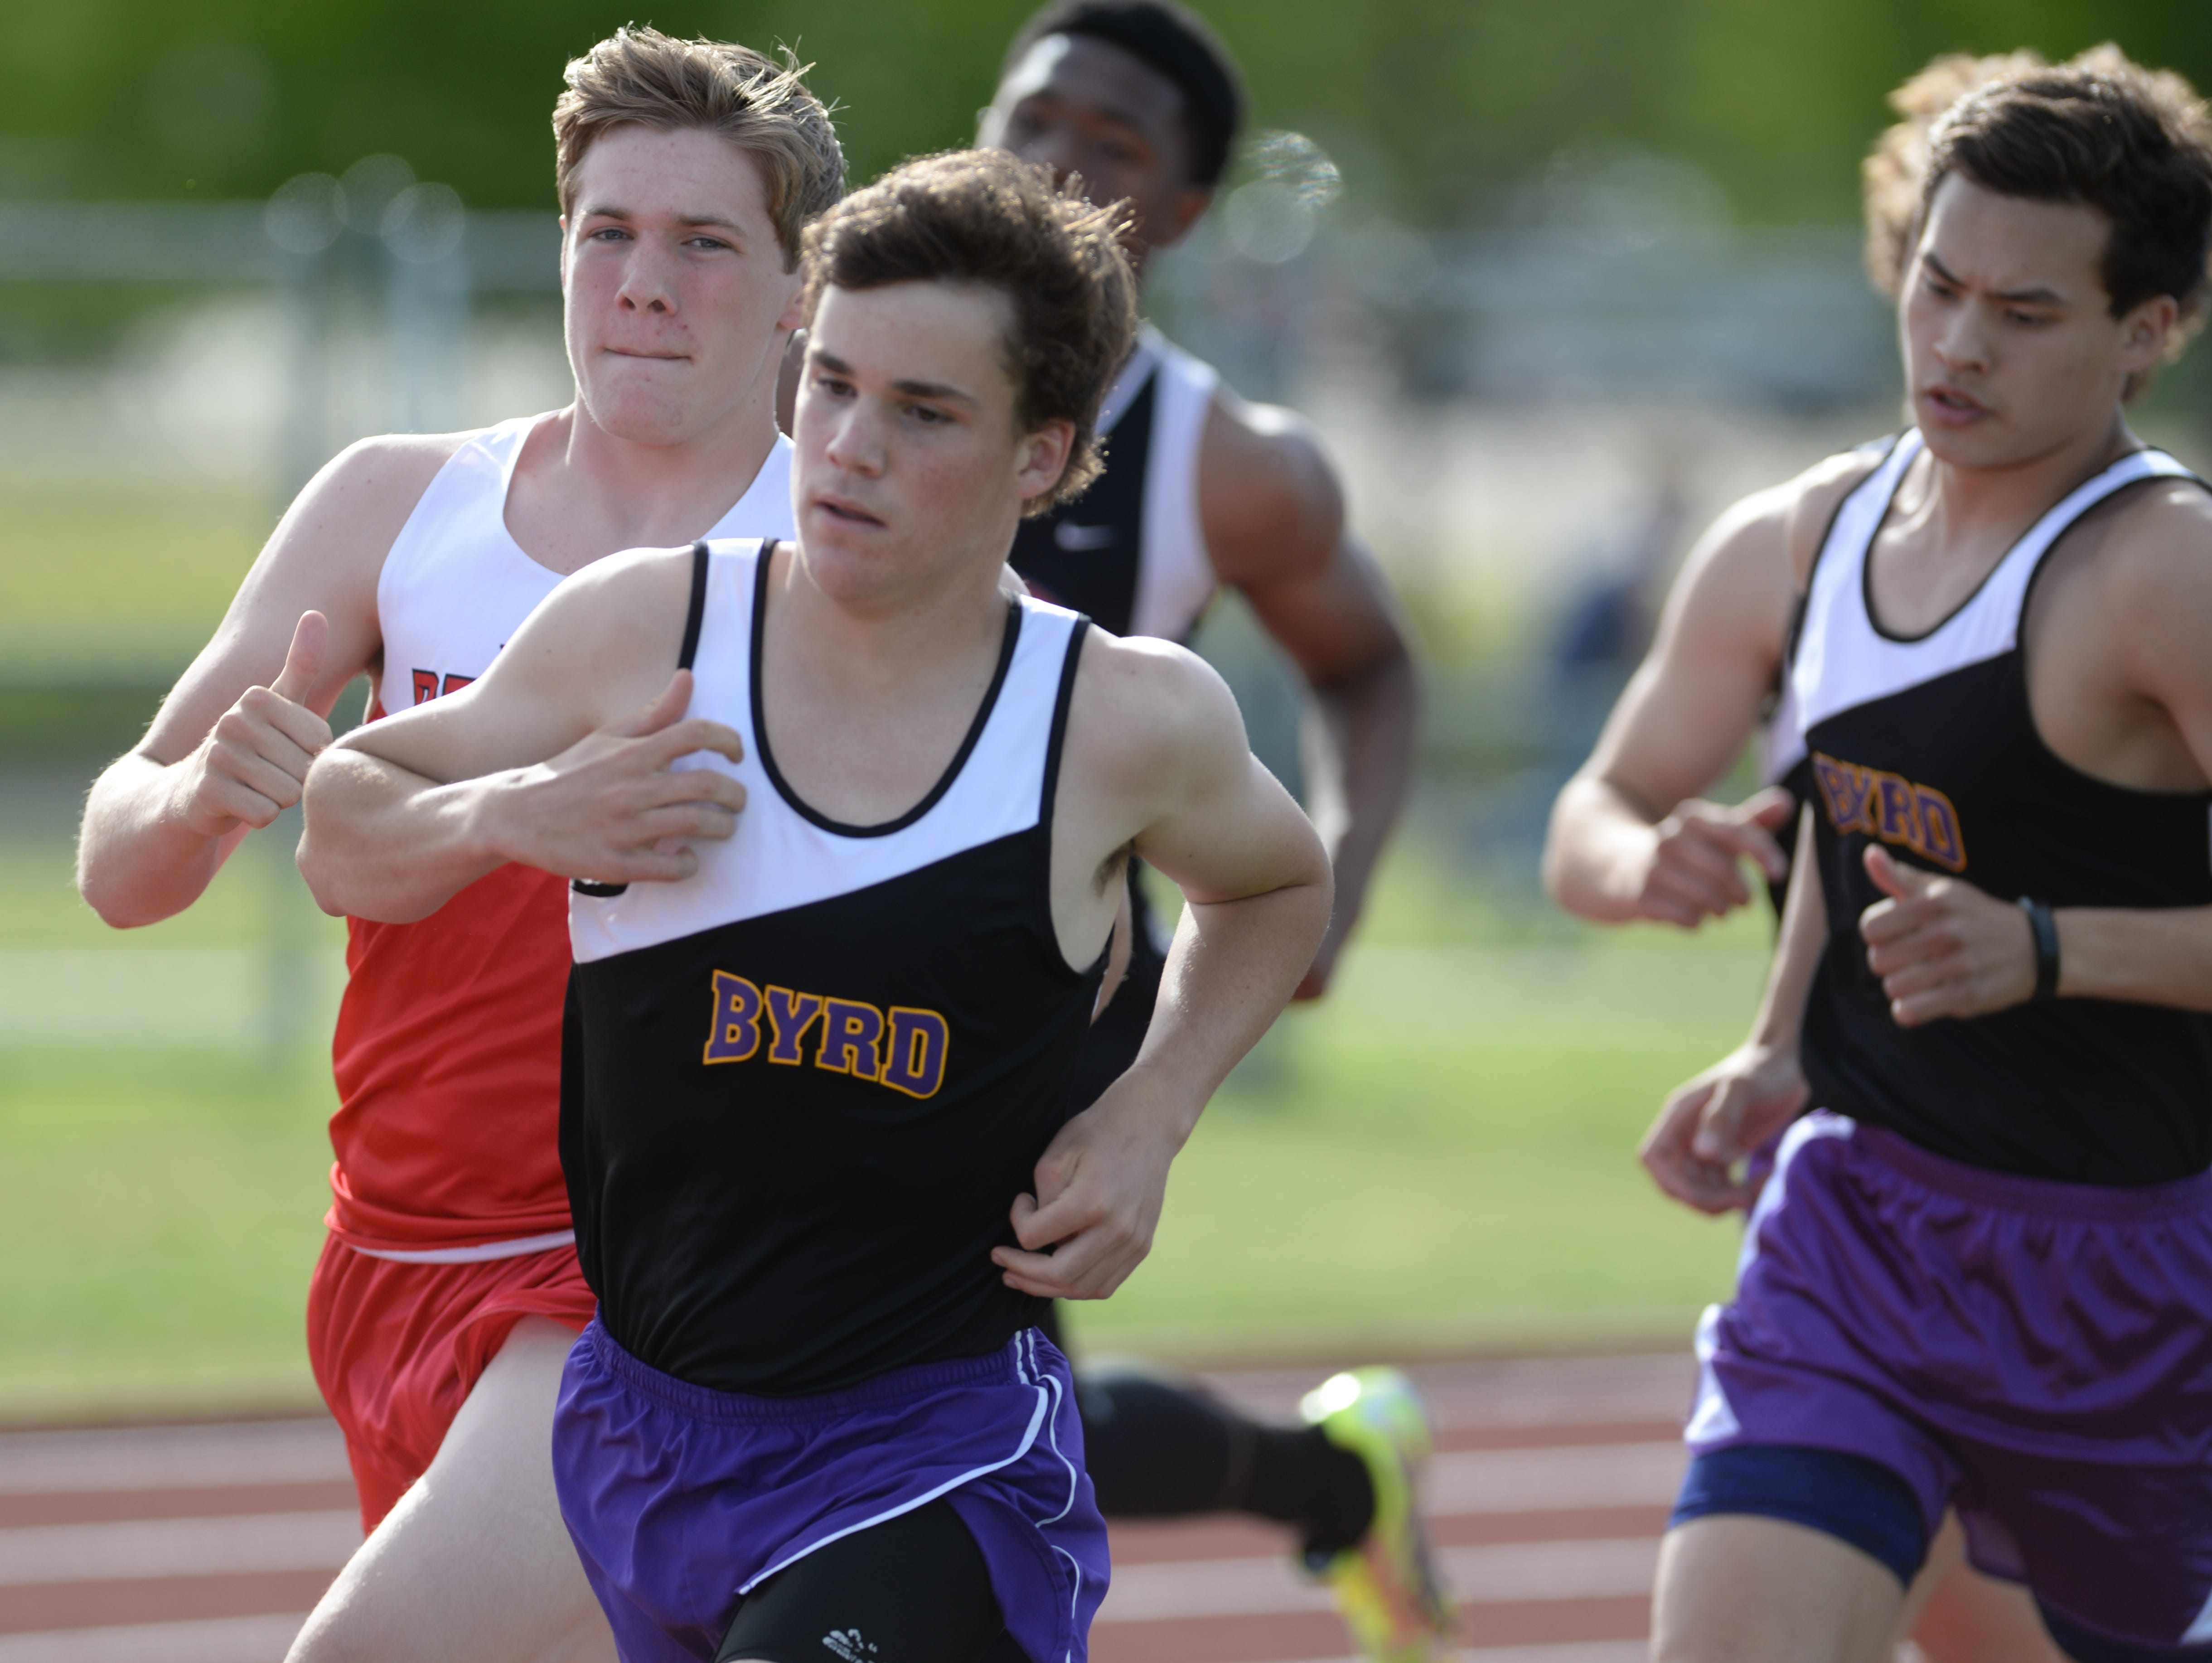 Allen England of Byrd finished second at the Shreveport relays in the 1600m run.